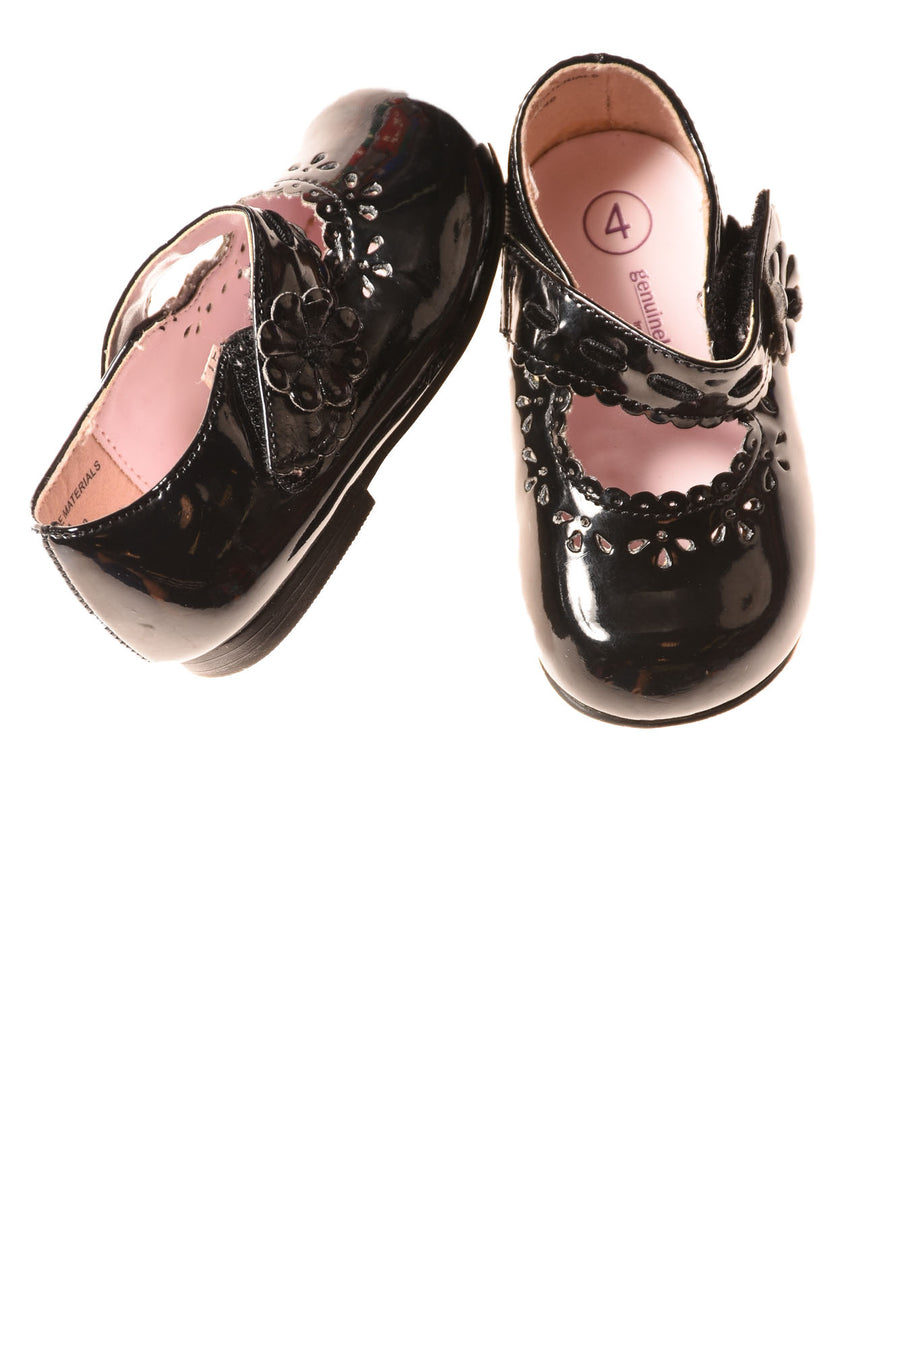 USED Oshkosh Baby Shoes 4 Black